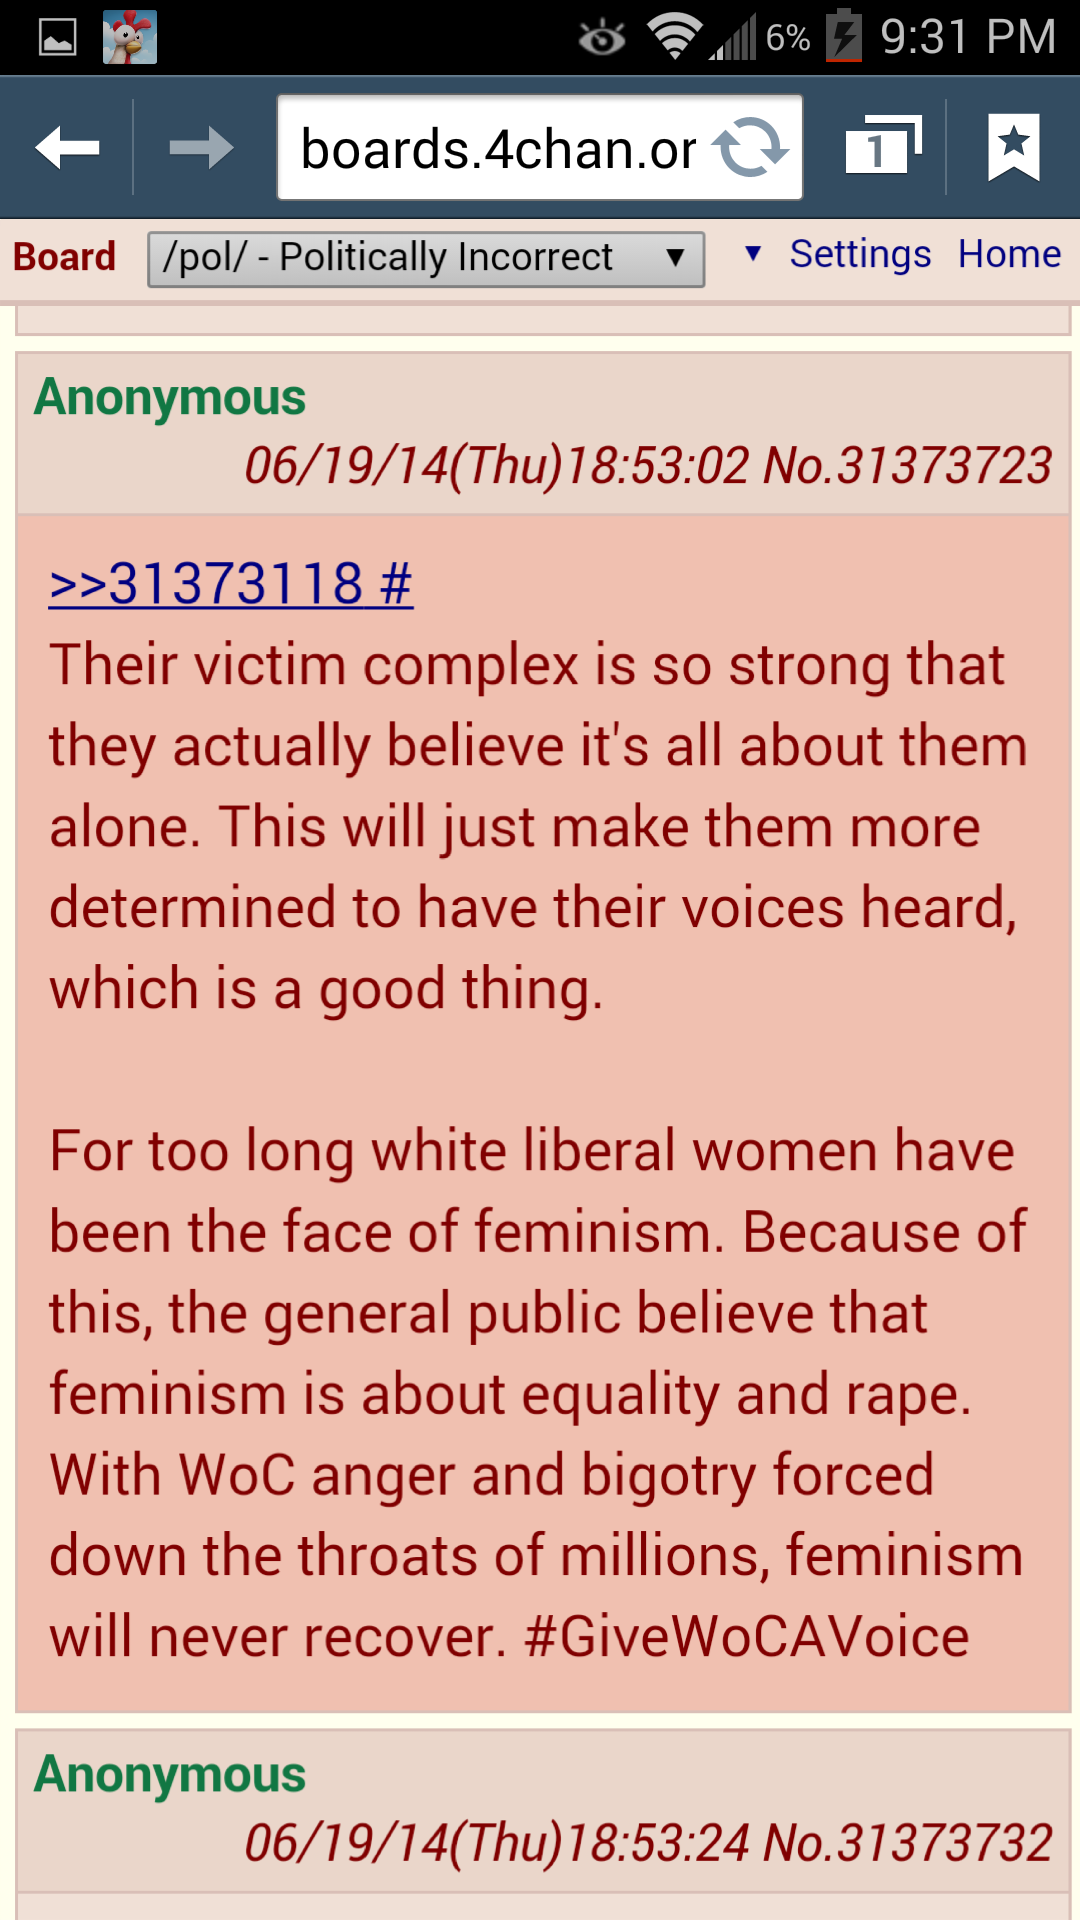 A 4chan comment: Their victim complex is so strong that they actually believe it's all about them alone. This will just make them more determined to have their voices heard, which is a good thing. For too long white liberal women have been the face of feminism. Because of this, the general public believe that feminism is about equality and rape. With WoC anger and bigotry forced down the throats of millions, feminism will never recover. #GiveWoCAVoice